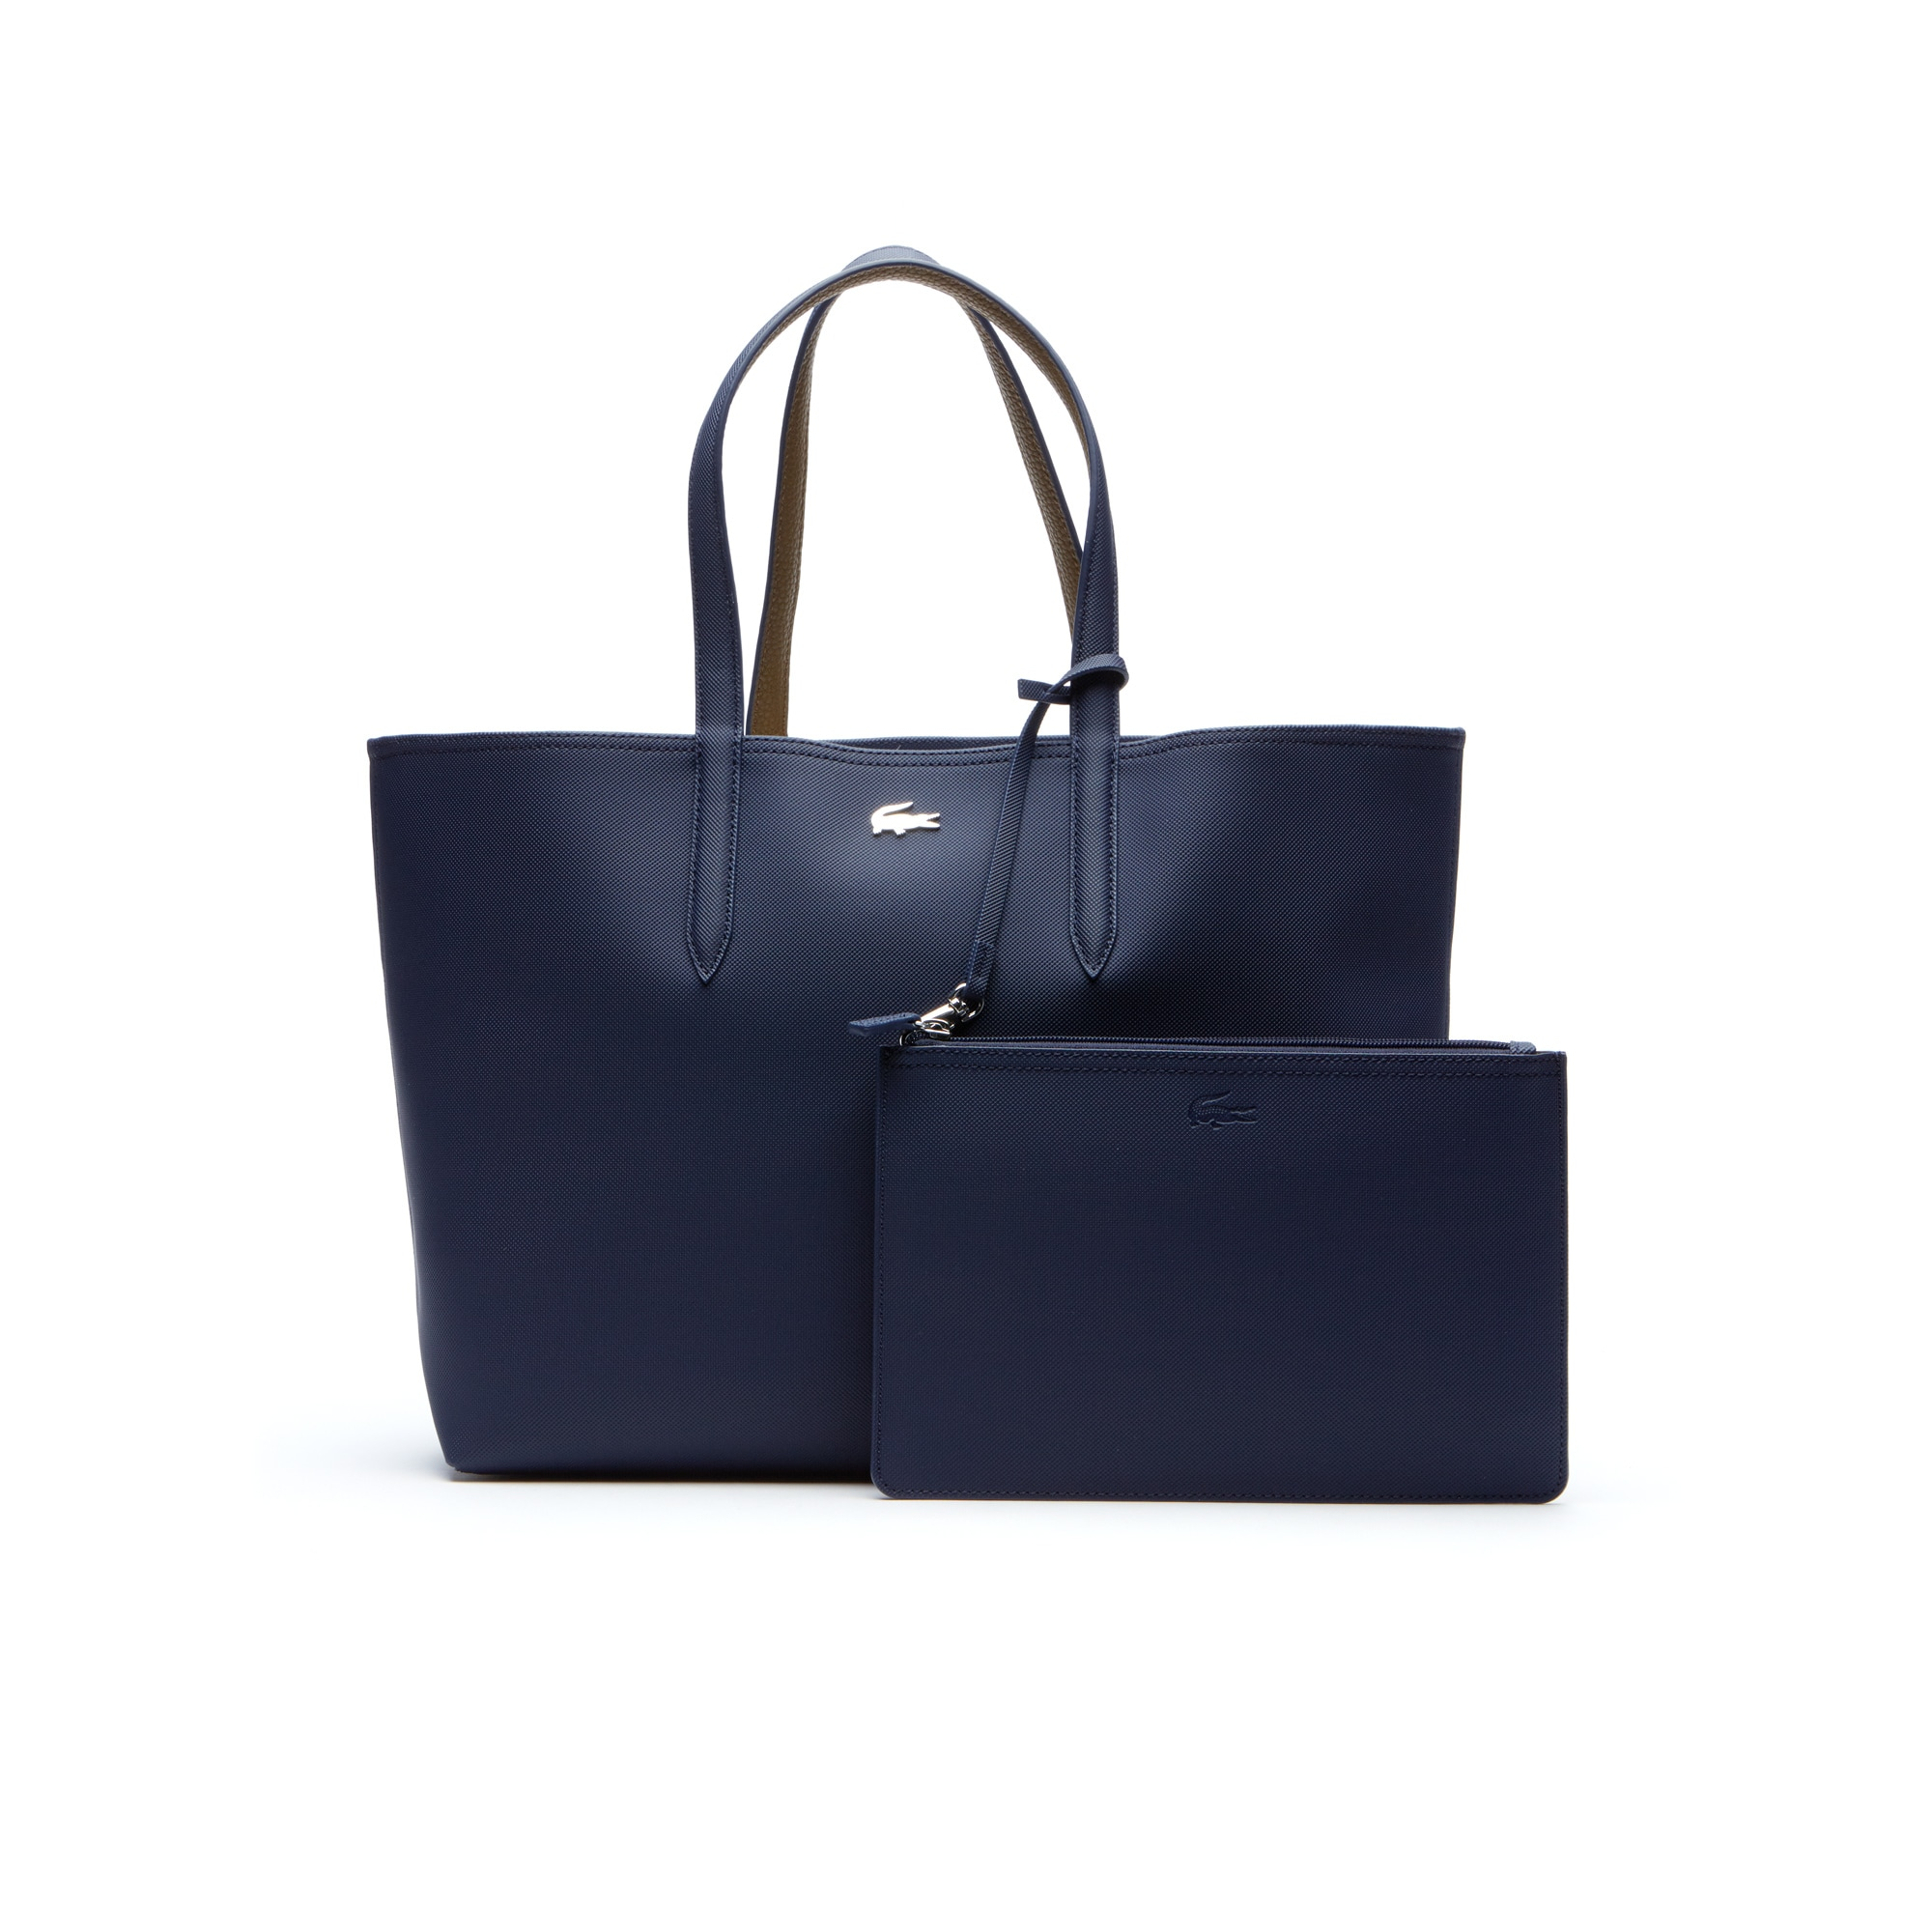 Purses and Handbags |Clutches and Totes | LACOSTE